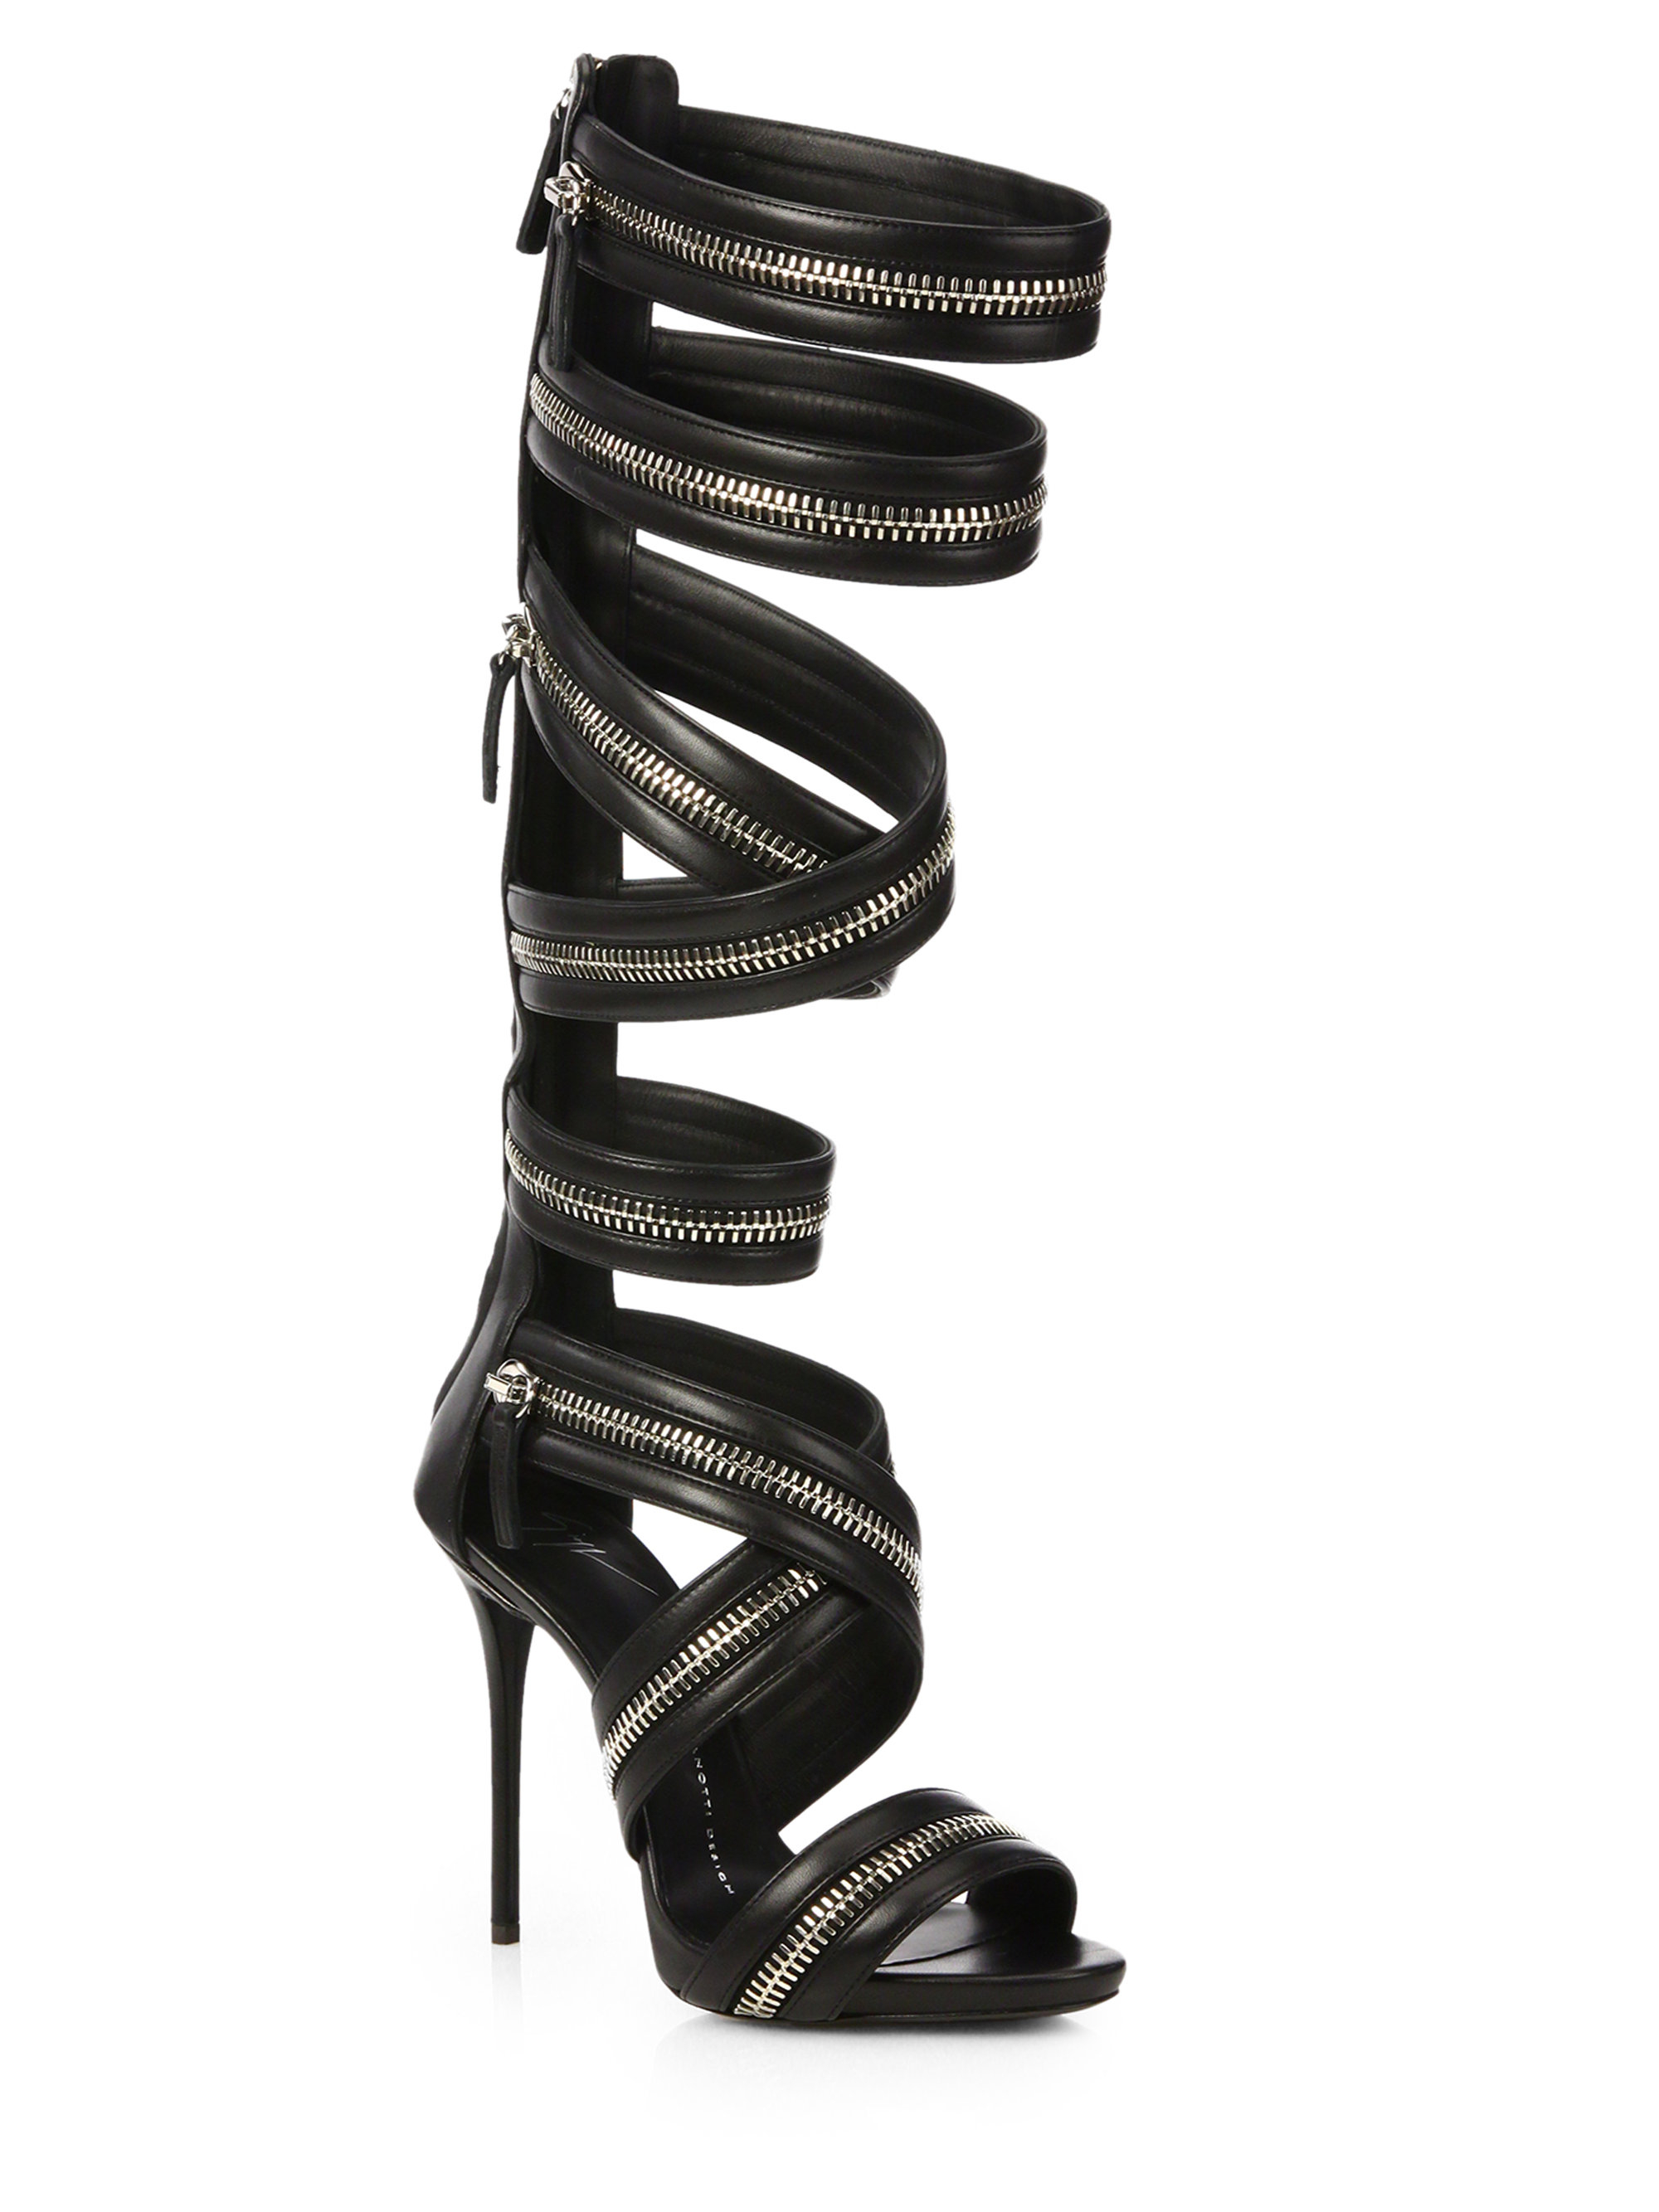 53b8431ff10c Lyst - Giuseppe Zanotti Leather Knee-high Zipper Gladiator Sandals ...